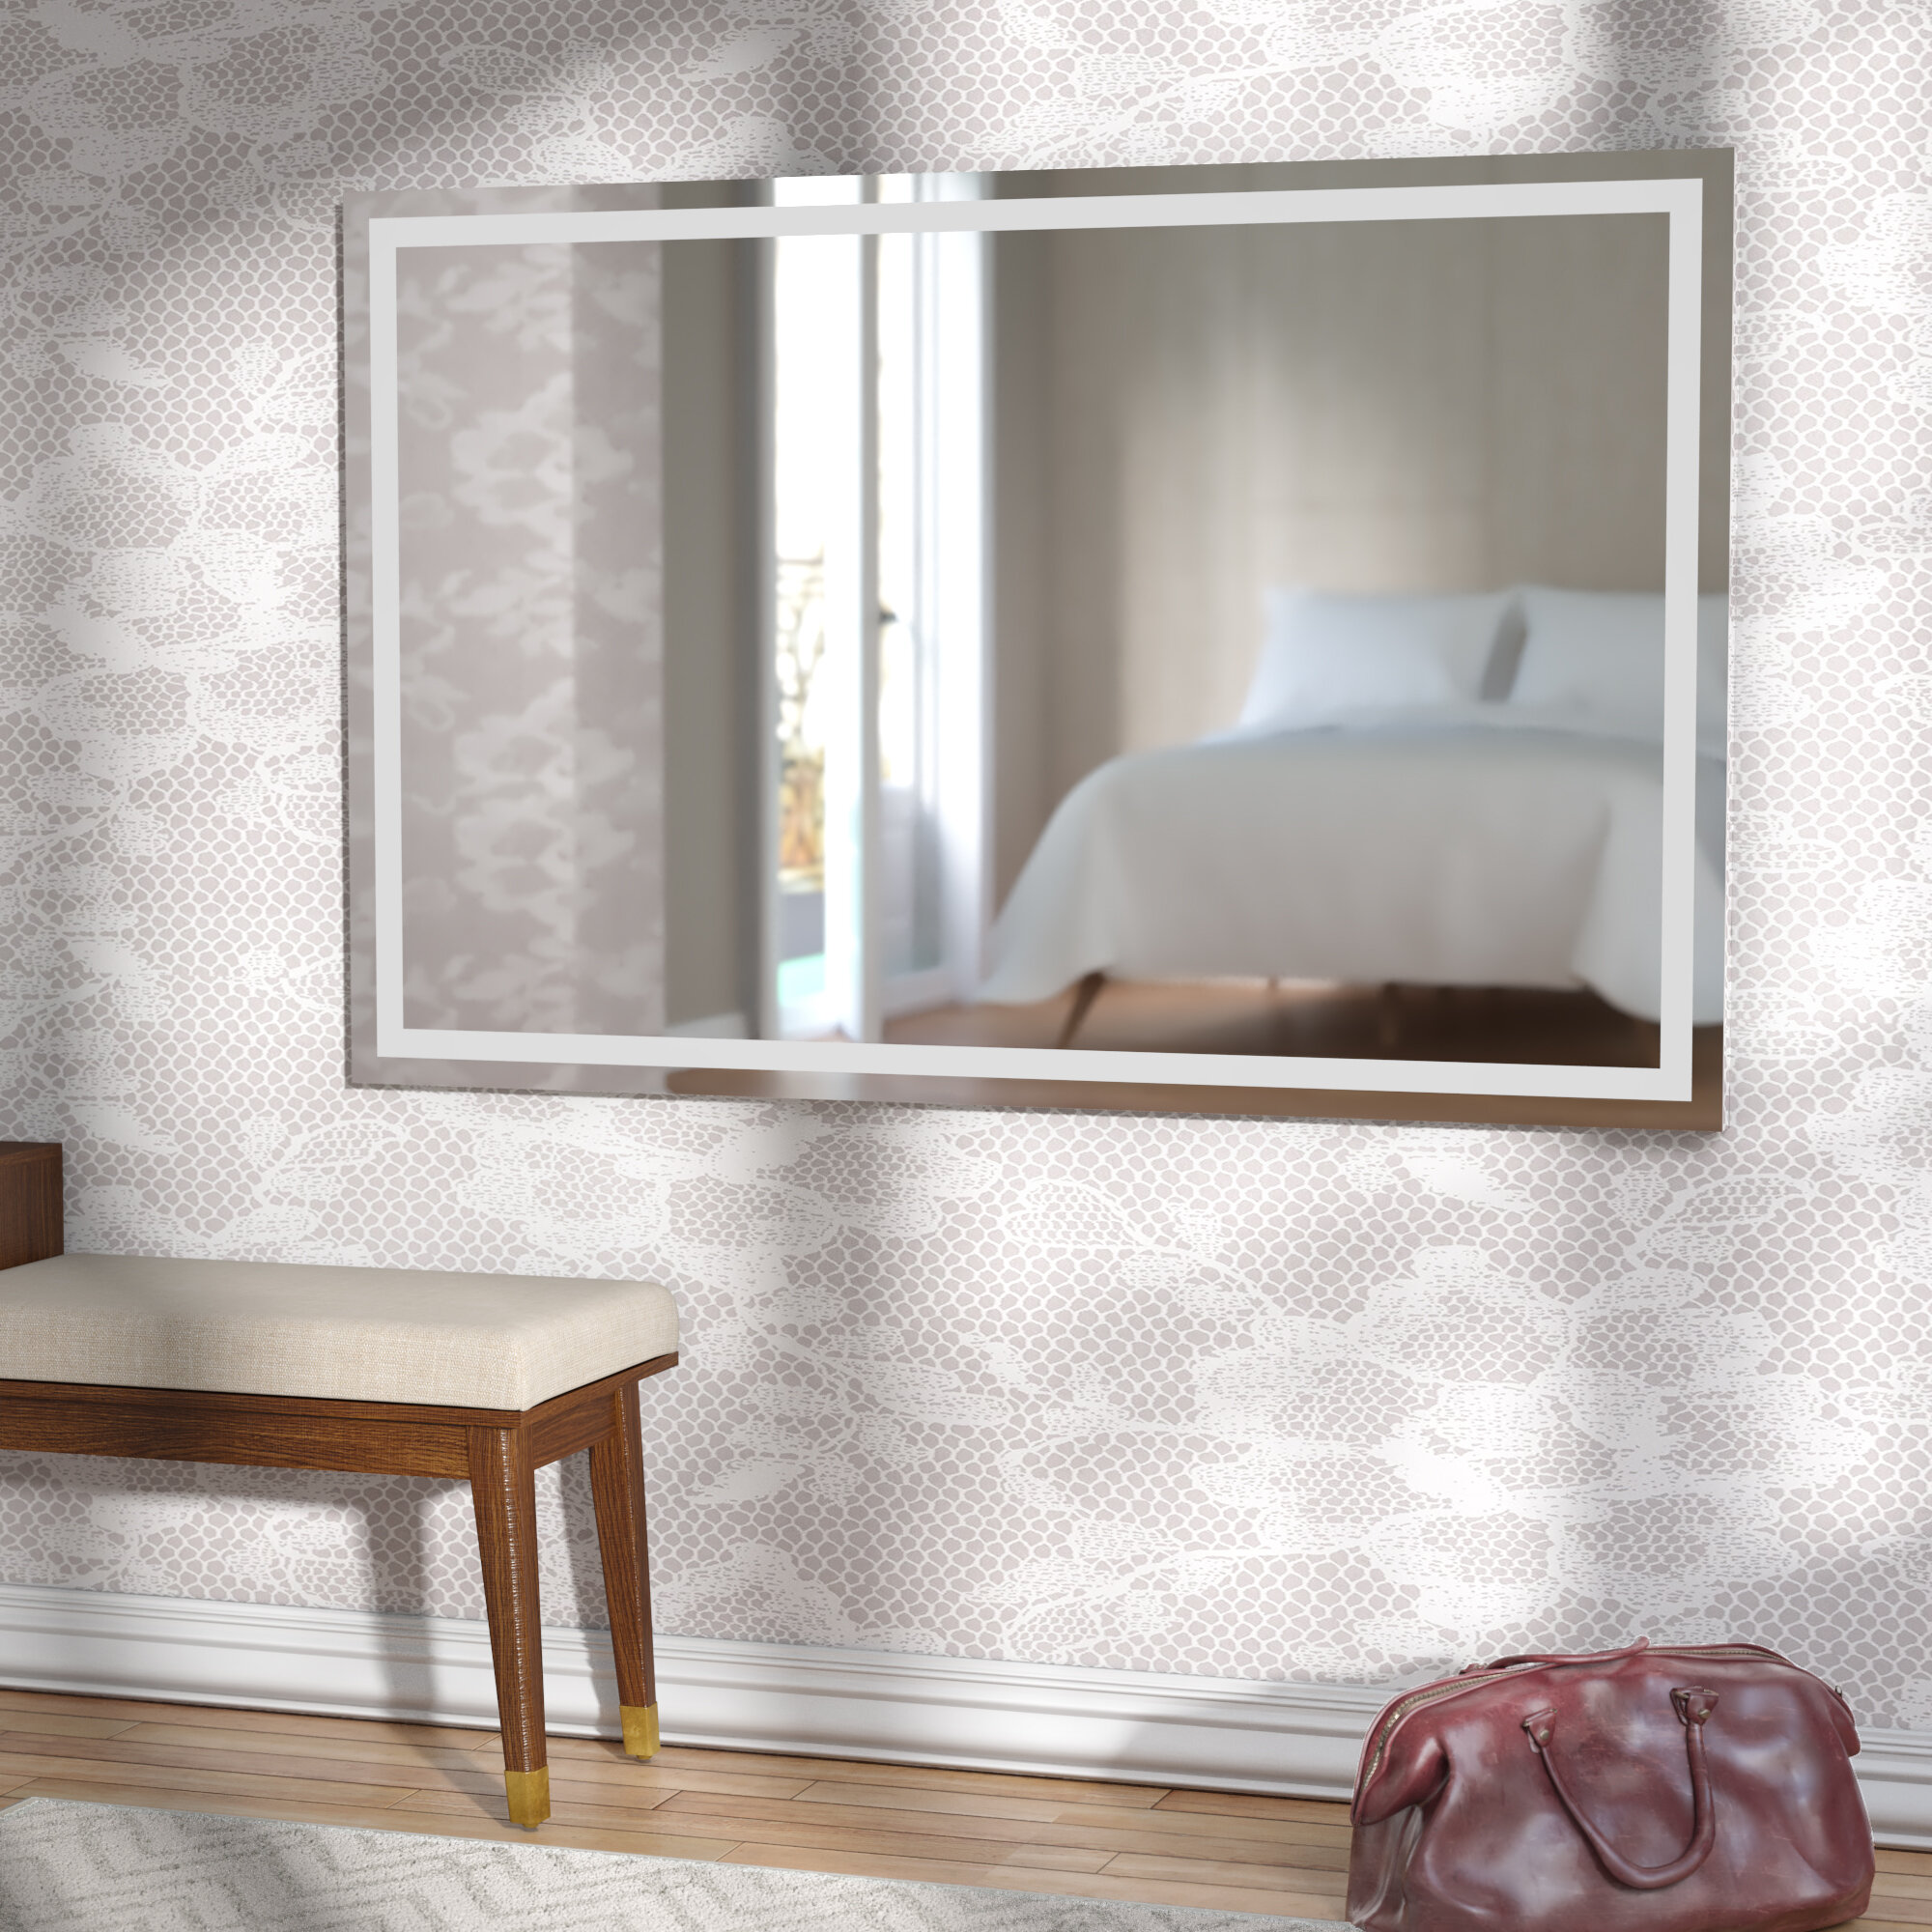 delivery wood white shelf collections l ledge x edge mirrors free william shelves shabby chic mirror with